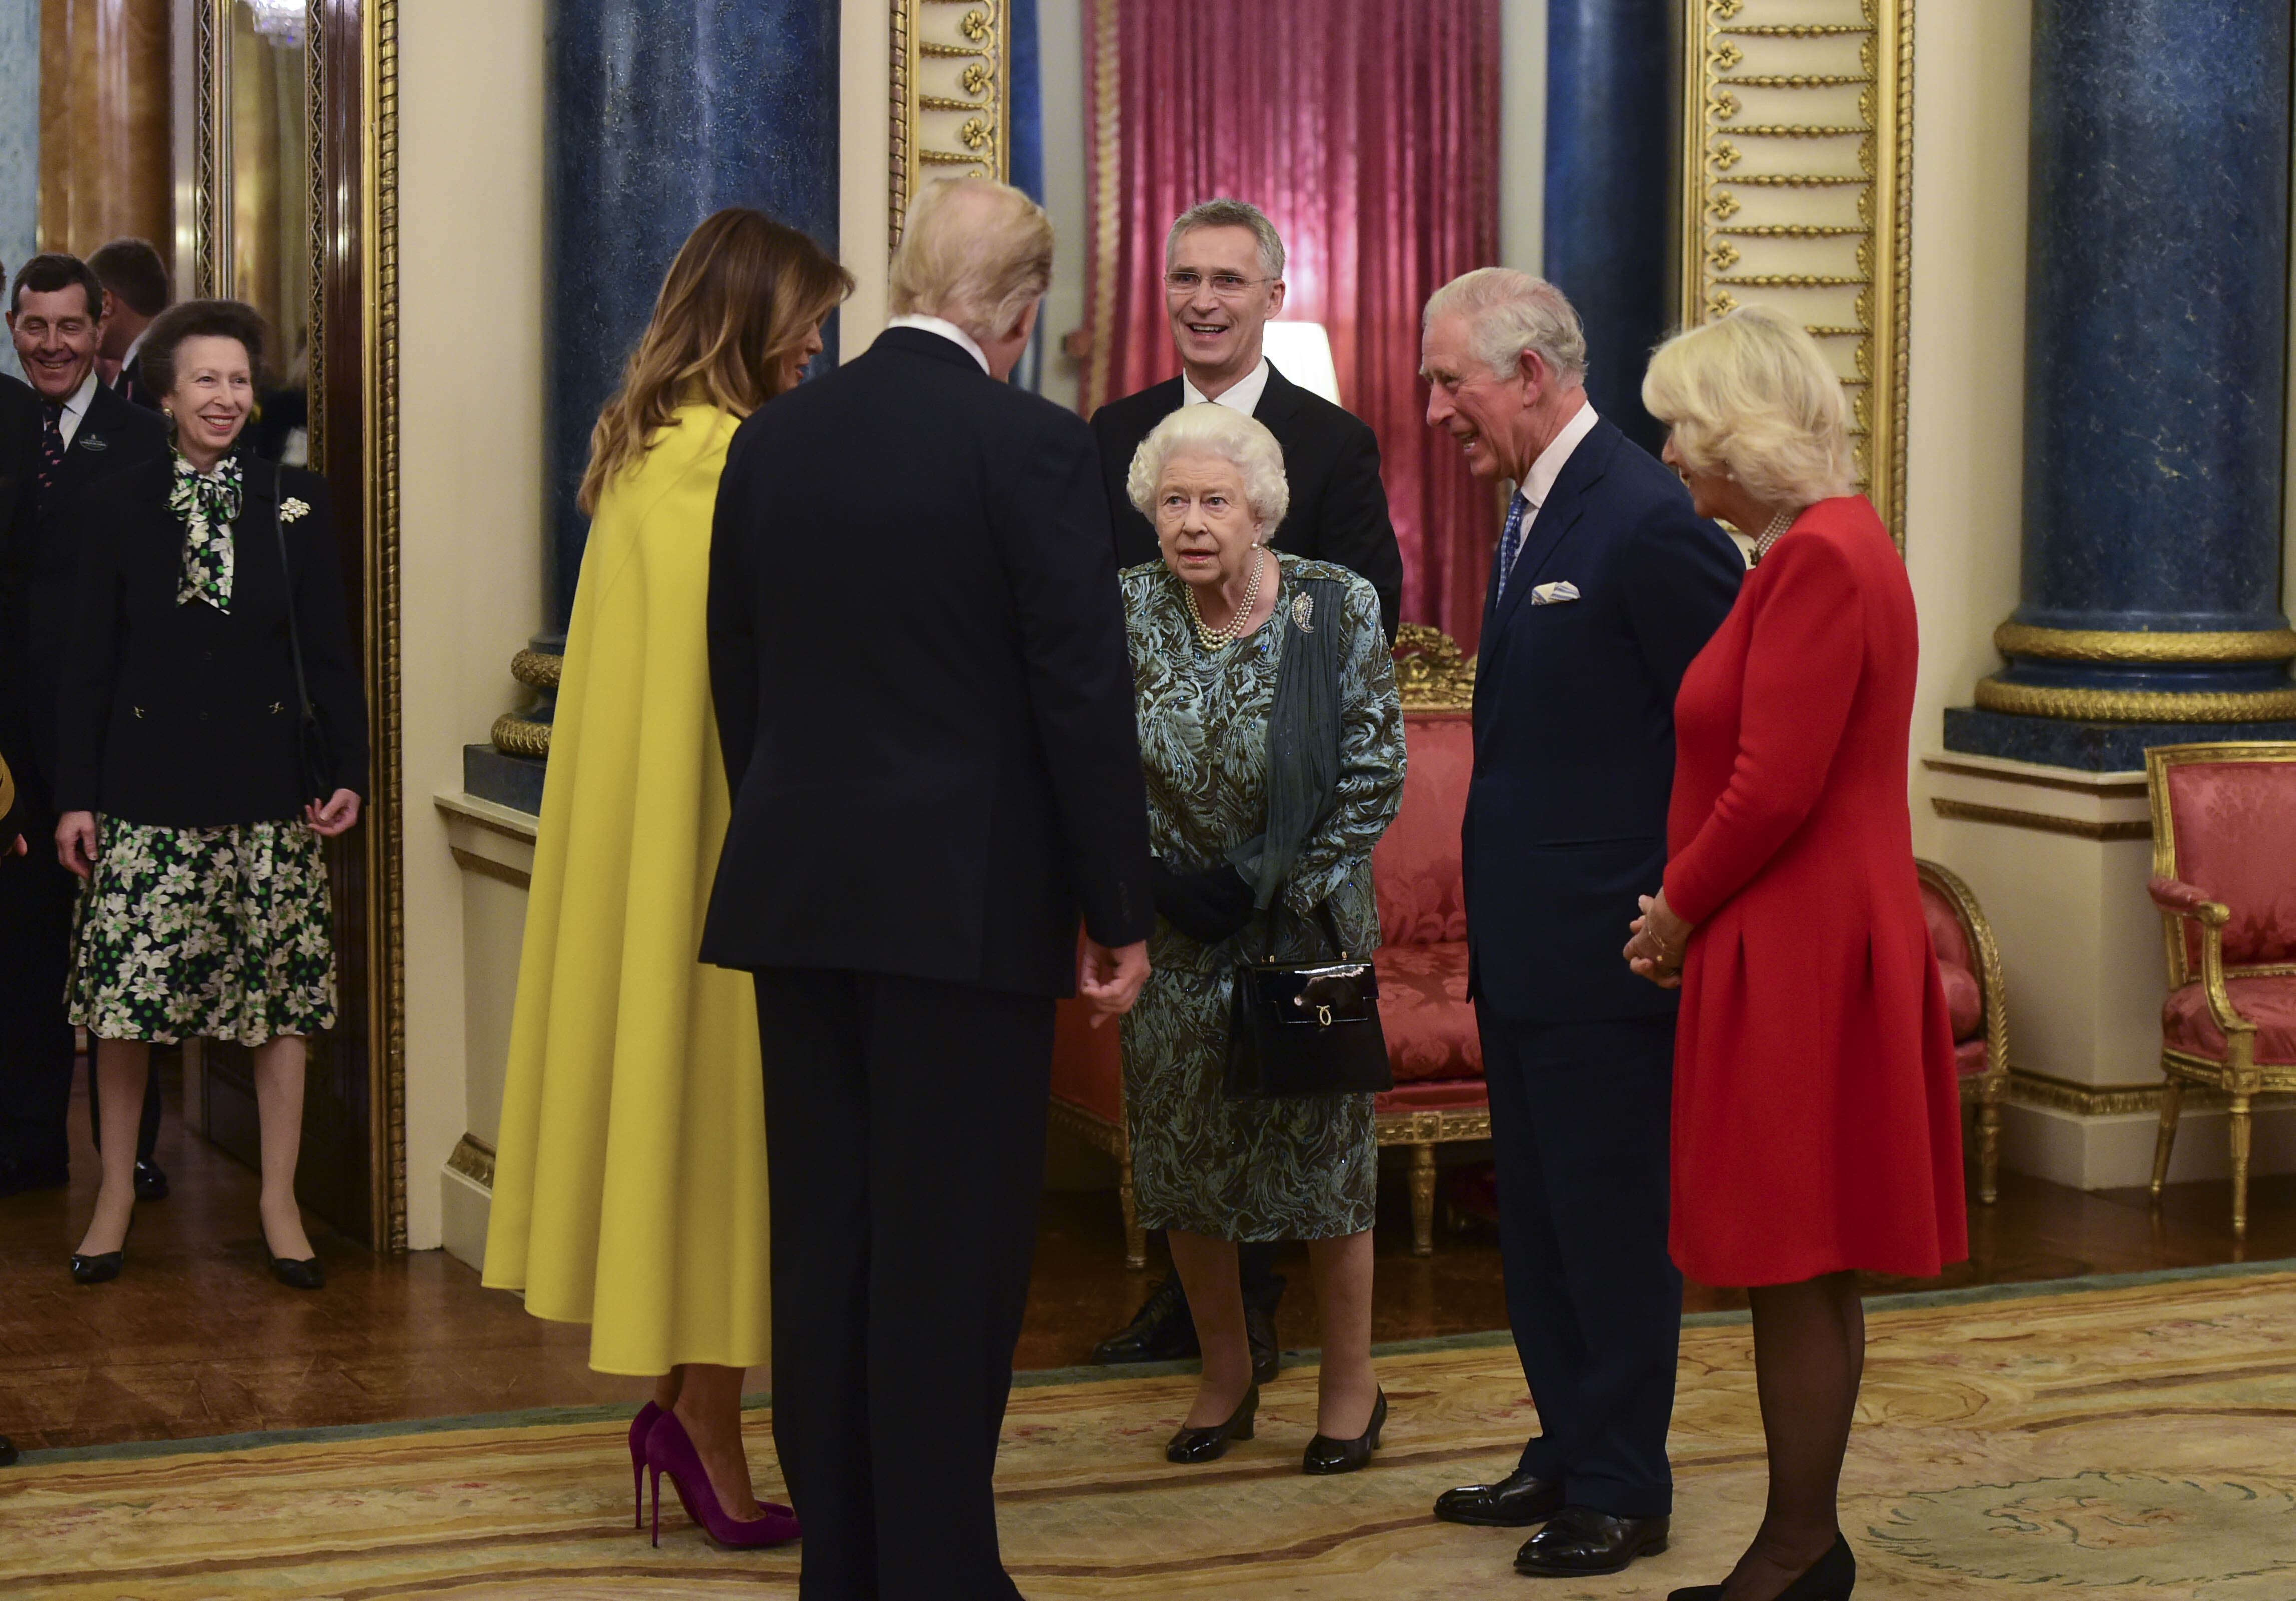 Photo by: KGC-512/STAR MAX/IPx 2019 12/3/19 The Queen, accompanied by other Members of the Royal Family, hosts a reception for NATO leaders, spouses or partners, and delegations, at Buckingham Palace in London, England. Here, Queen Elizabeth, Melania Trump, Donald Trump, Prince Charles, Camilla